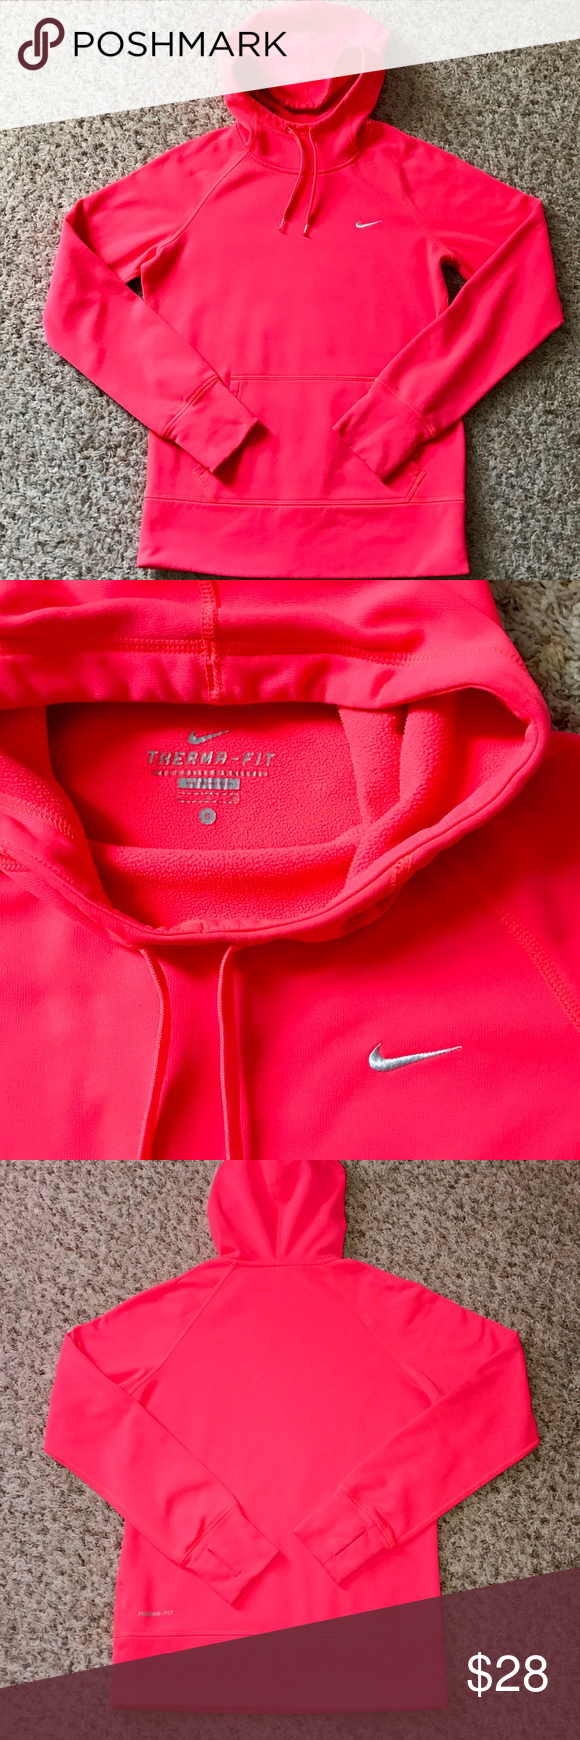 "Nike Therma-Fit All Time Hoodie; size Small Women's size Small.  Gently worn a few times buts looks and feels like new. Taken great care of and laundered correctly. This Hoodie keeps you warm and comfortable with Therma-FIT fabric and Dri-FIT lining in the hood to lock in heat and wick away sweat. It has the ""scuba hood"" with drawstrings to keep the warmth and protection from the elements when you need it. Kangaroo pocket and has the thumb hole details on the wrist cuffs. 100% Polyester…"